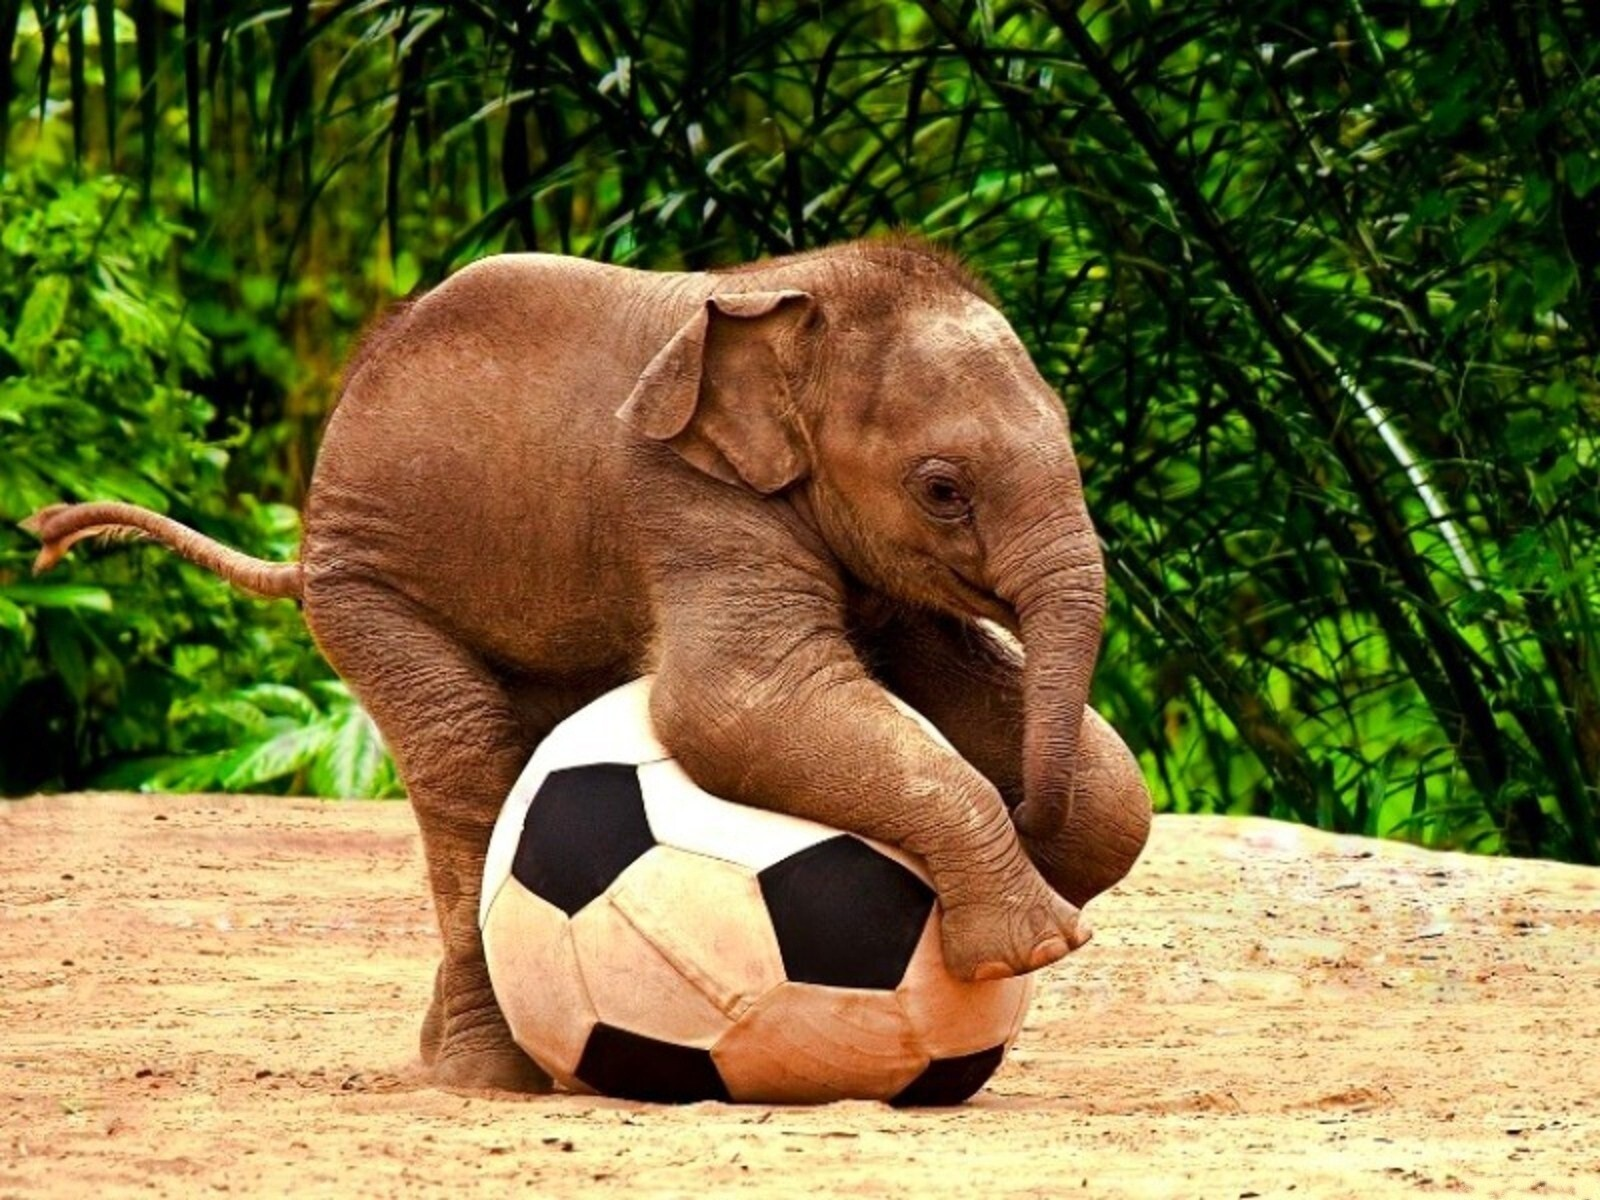 Cute elephant baby kid play with football wallpapers hd - Cute elephant pictures ...